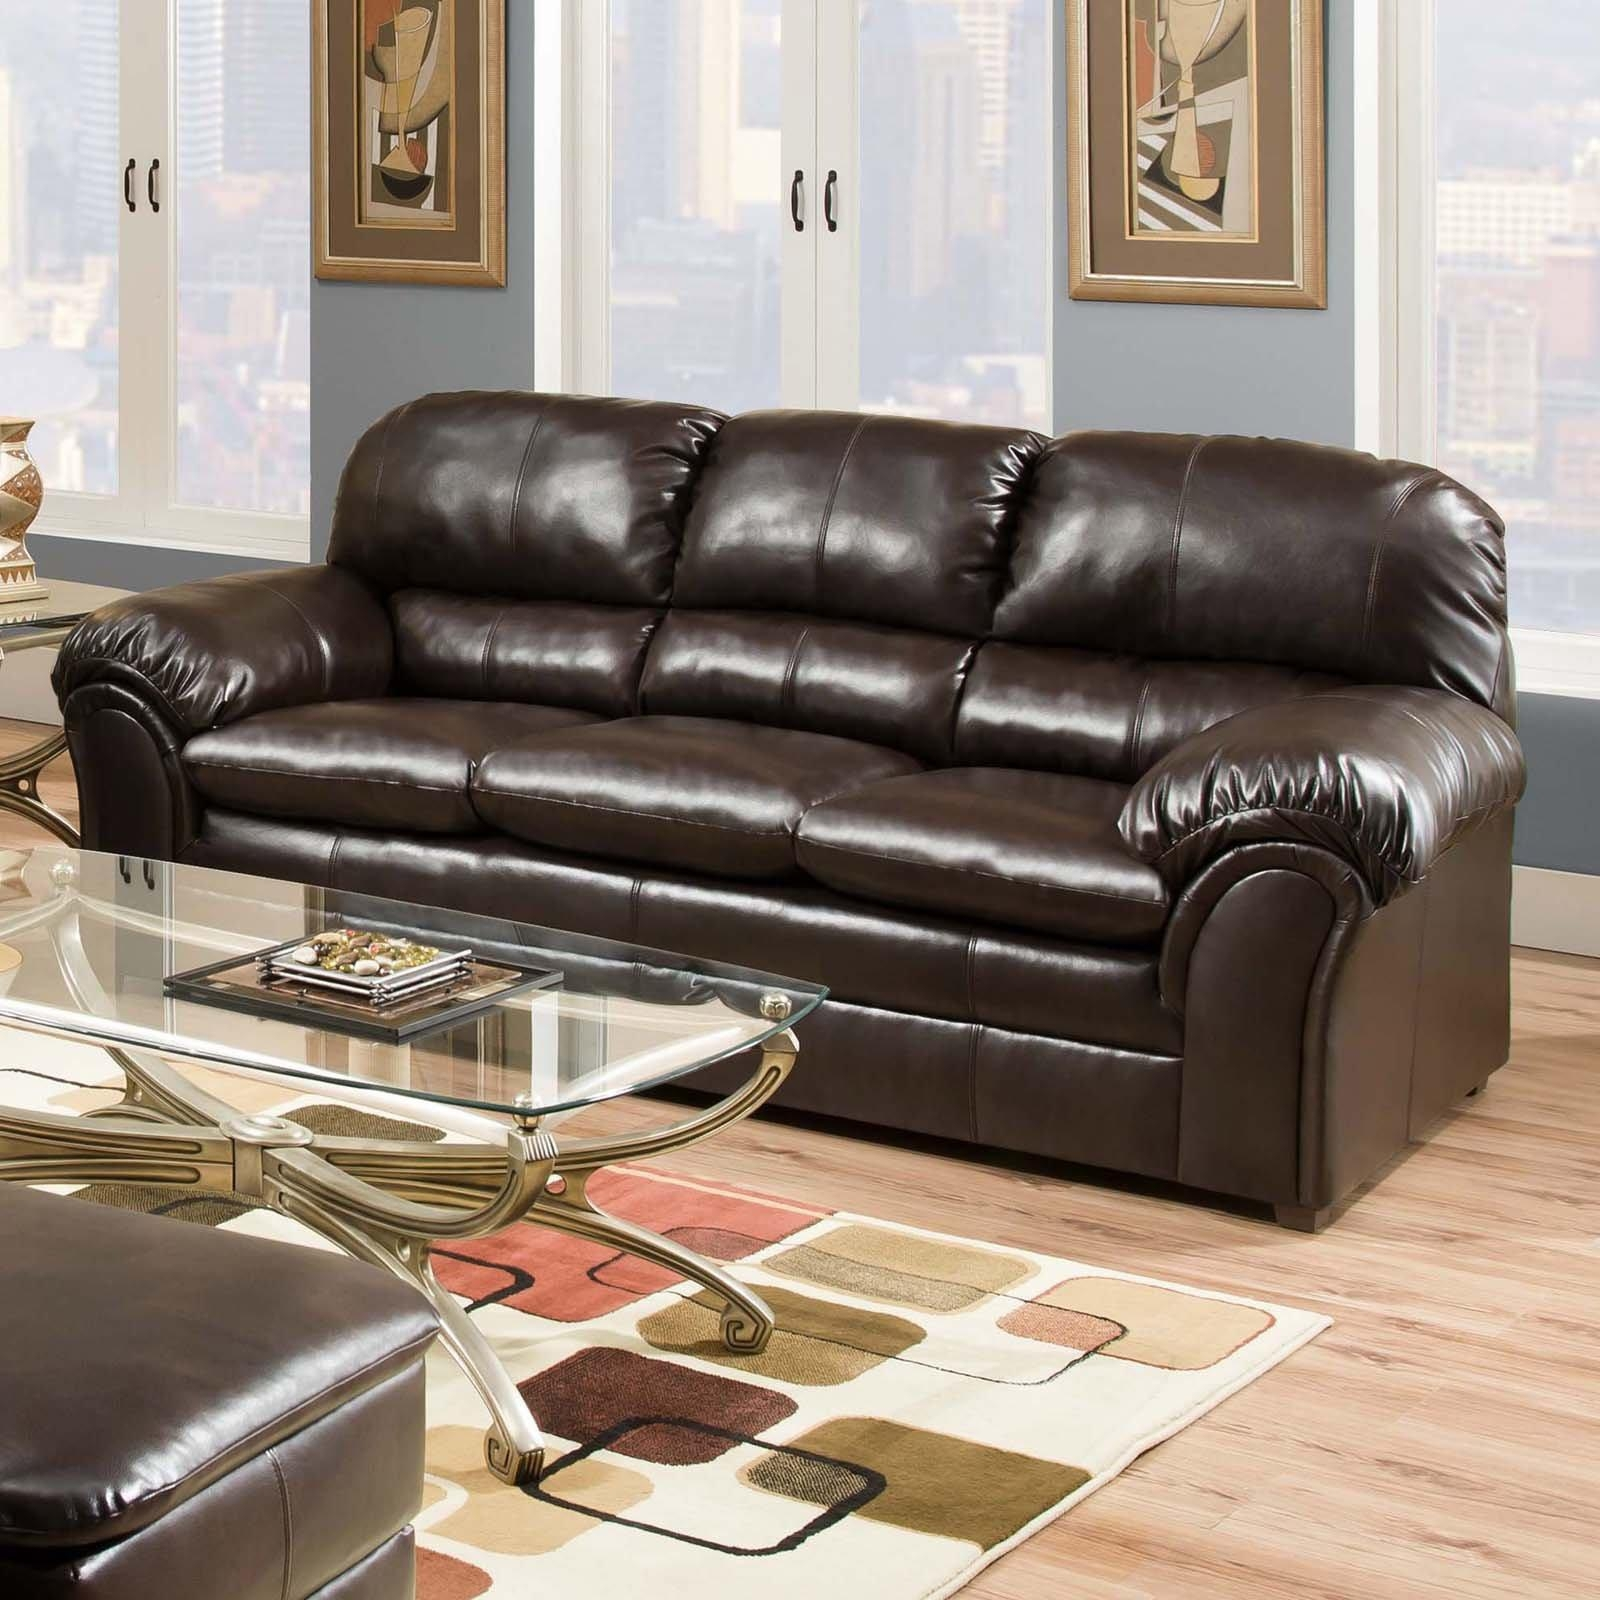 Simmons Upholstery Premier Bonded Leather Sofa | Hayneedle Pertaining To Simmons Leather Sofas (Image 16 of 20)